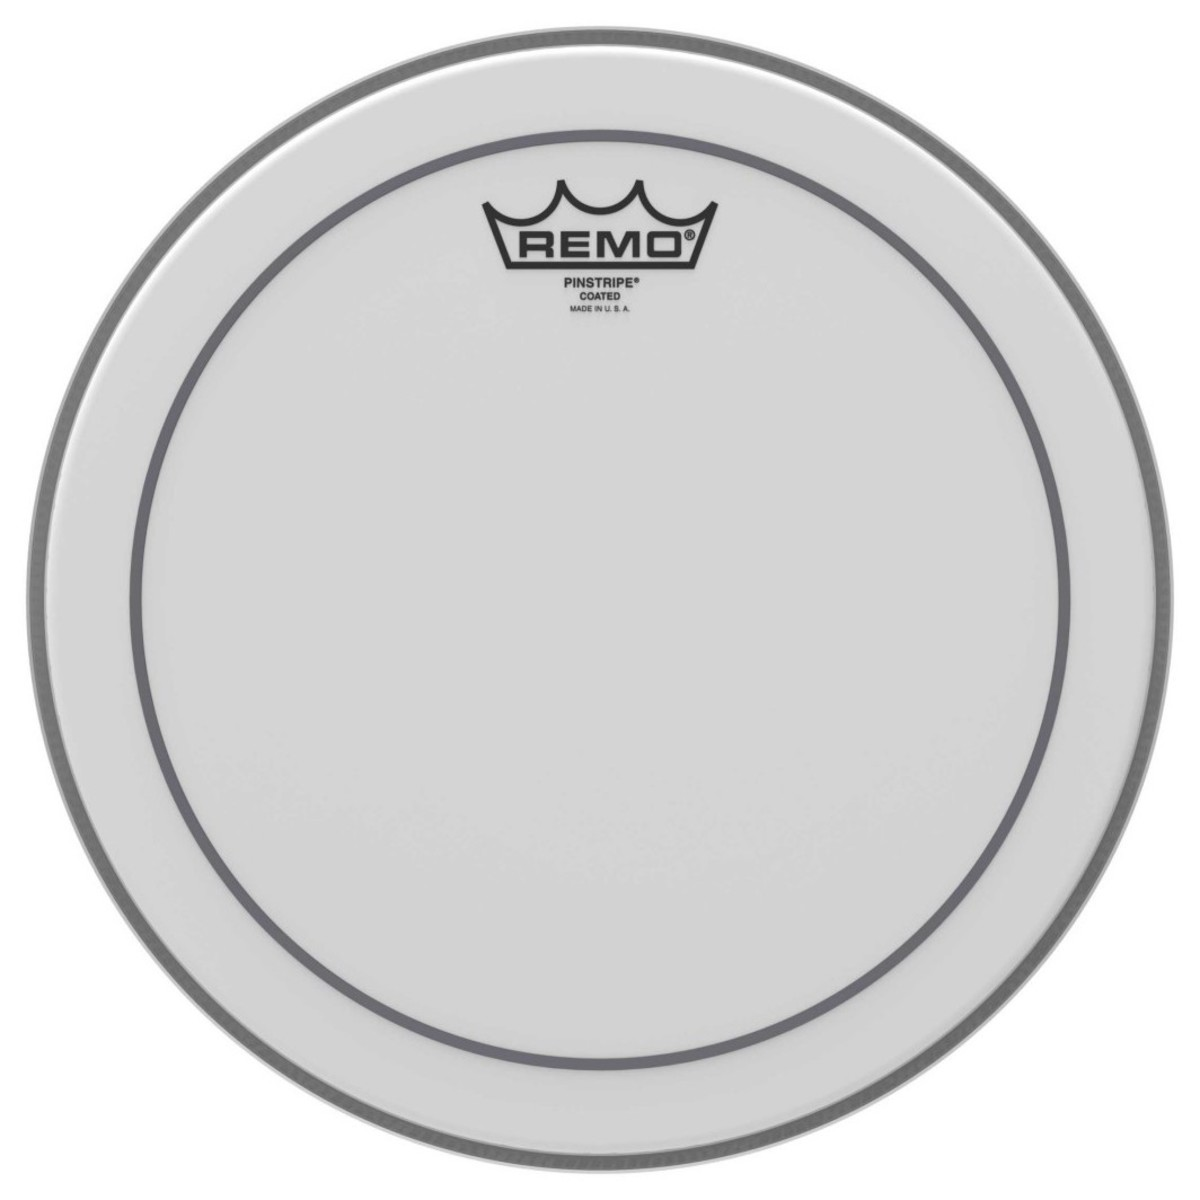 Remo Pinstripe Coated 13 Drum Head